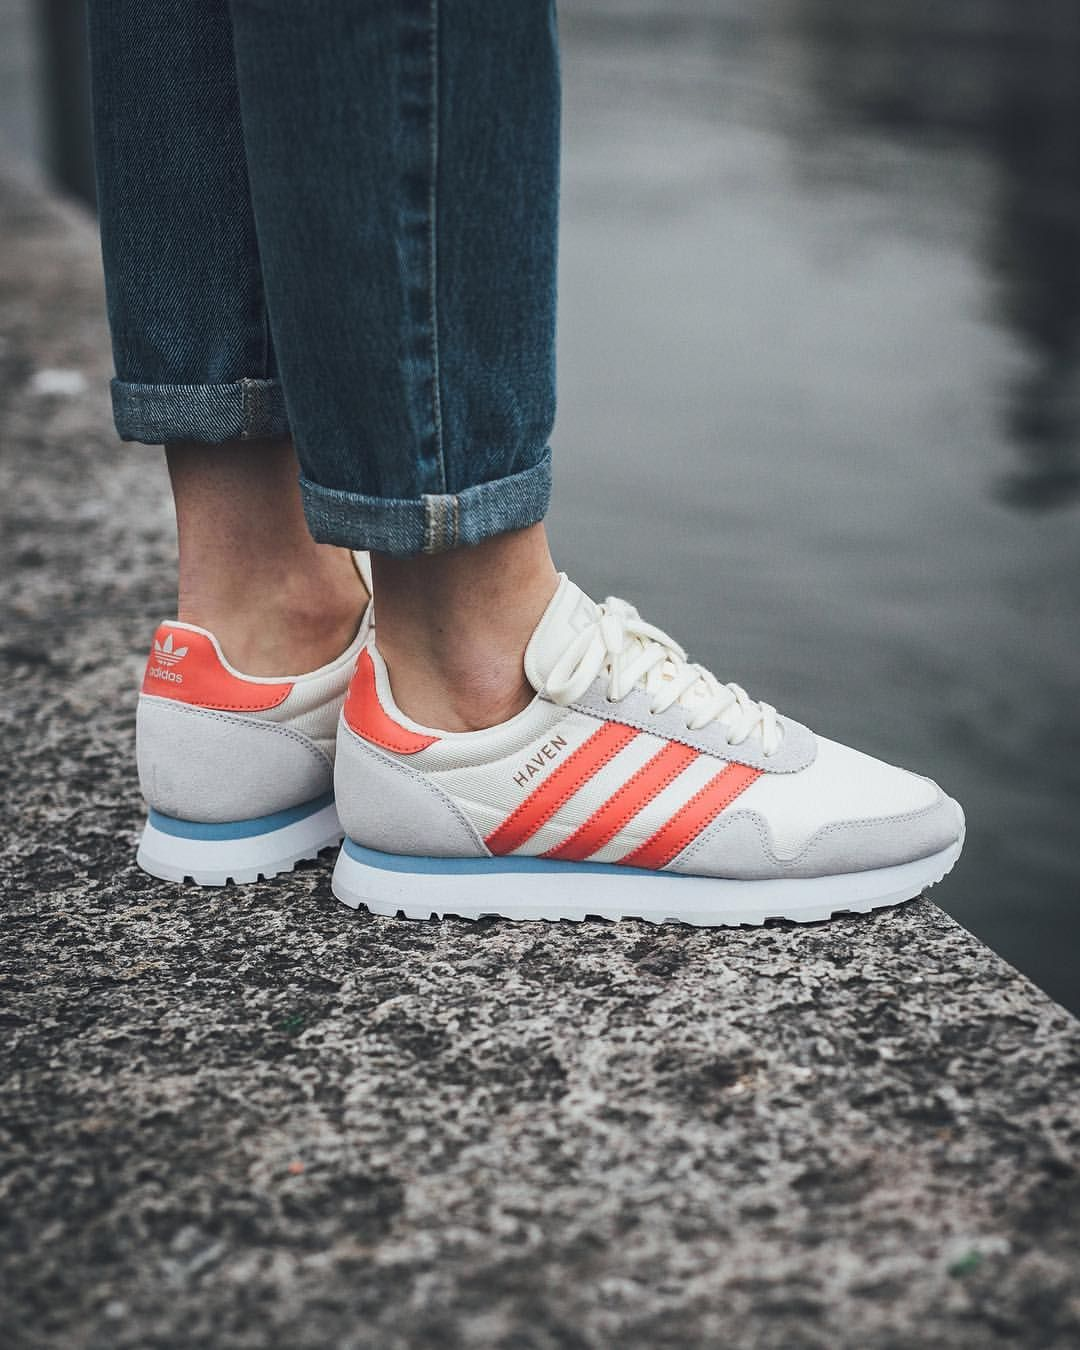 adidas Originals Haven | Shoes, Sneakers, Sports shoes outfit